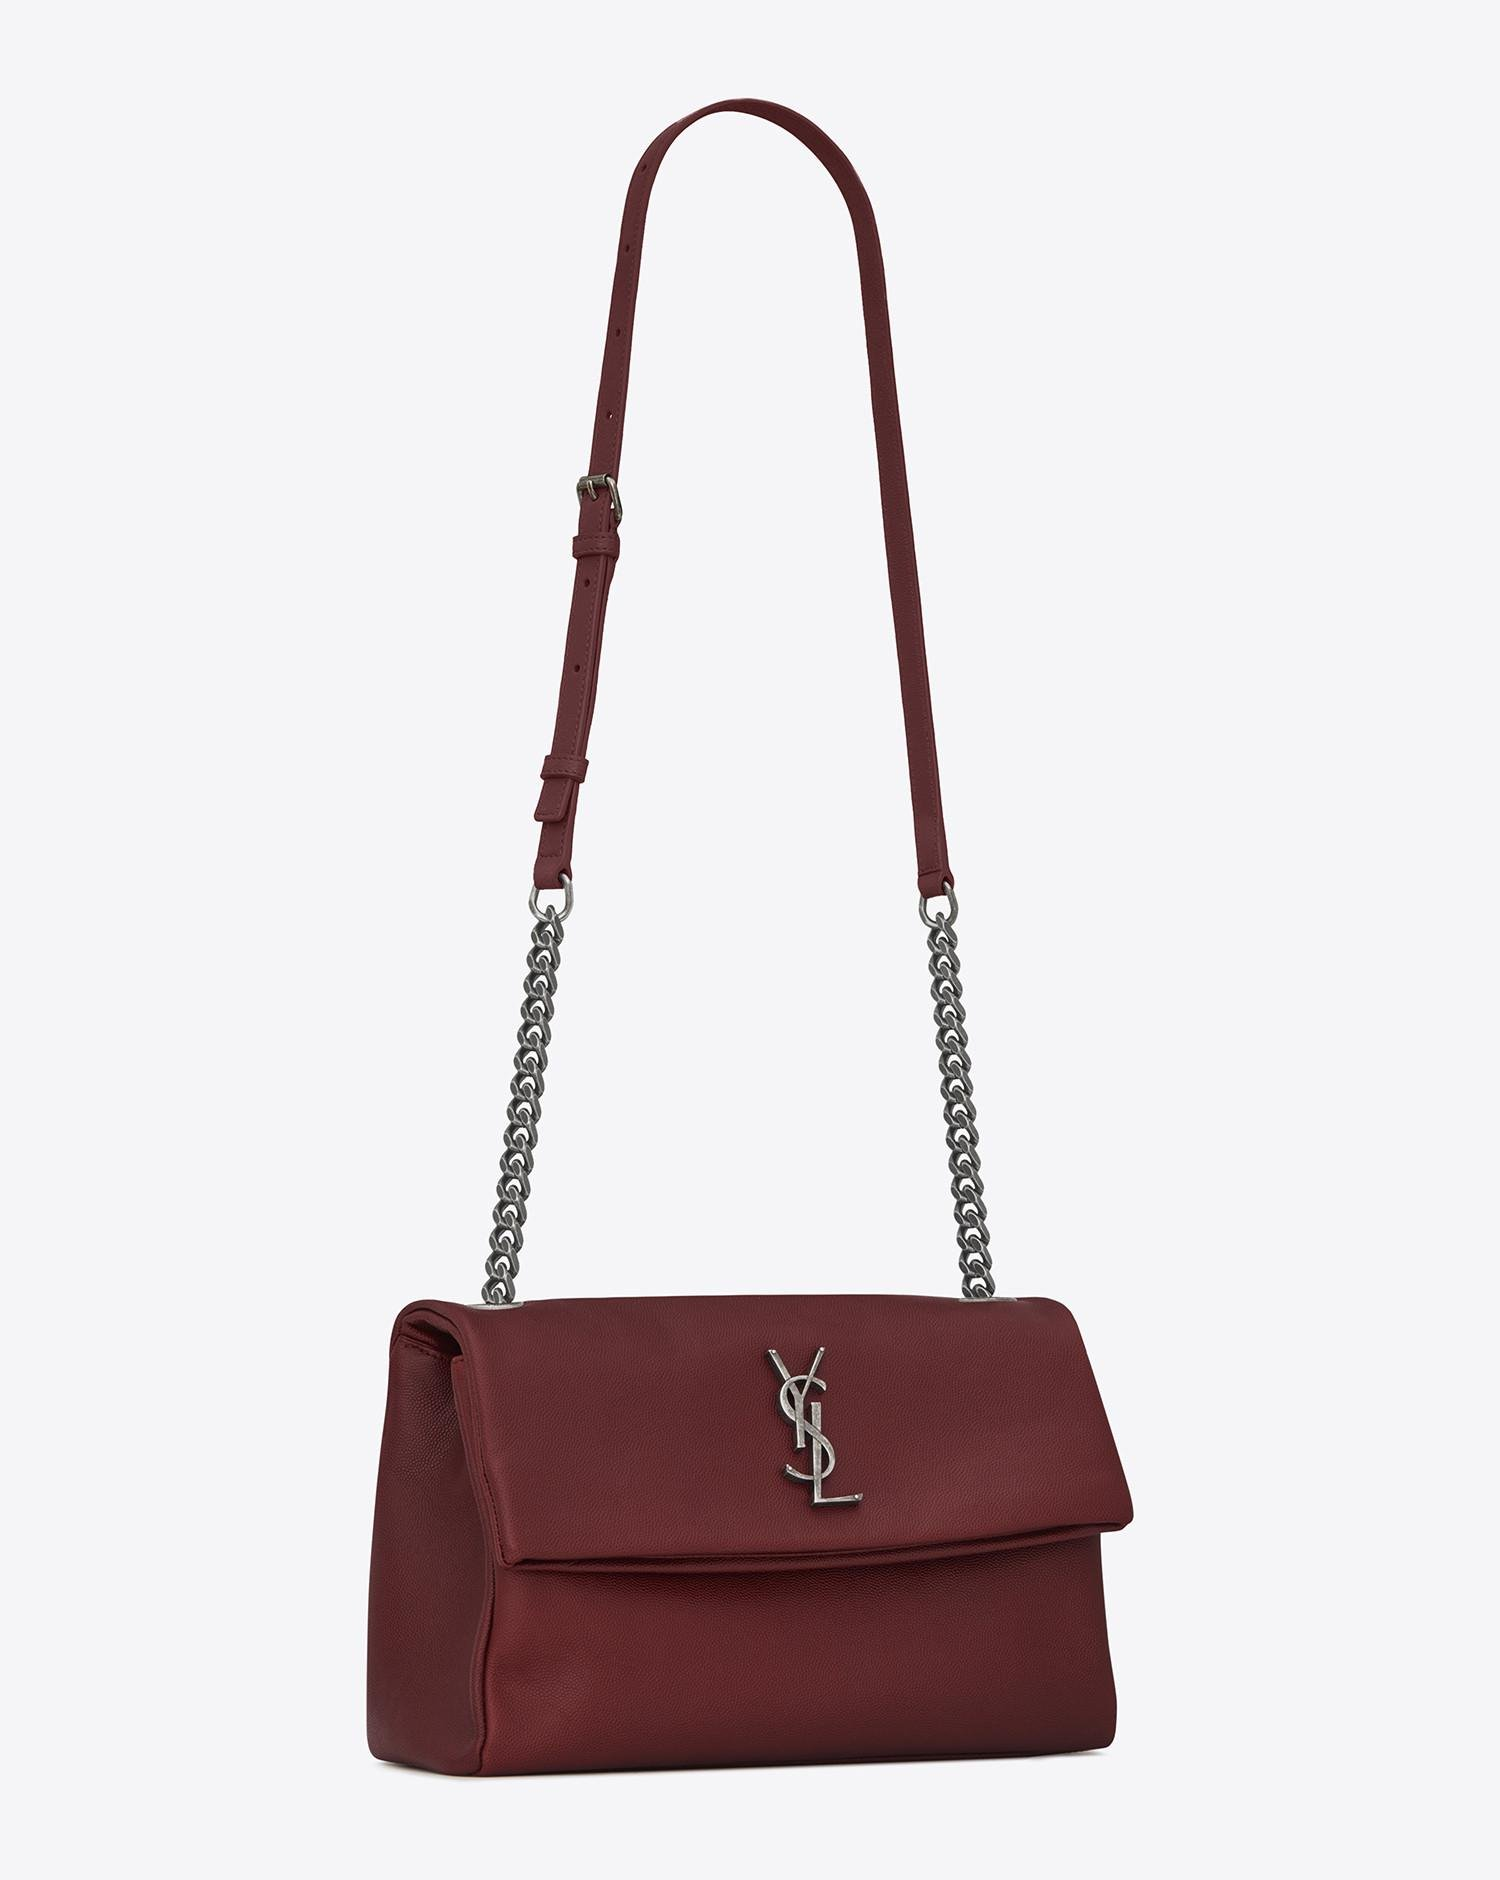 7ae586480254 Lyst - Saint Laurent Medium West Hollywood Bag In Dark Red Textured ...